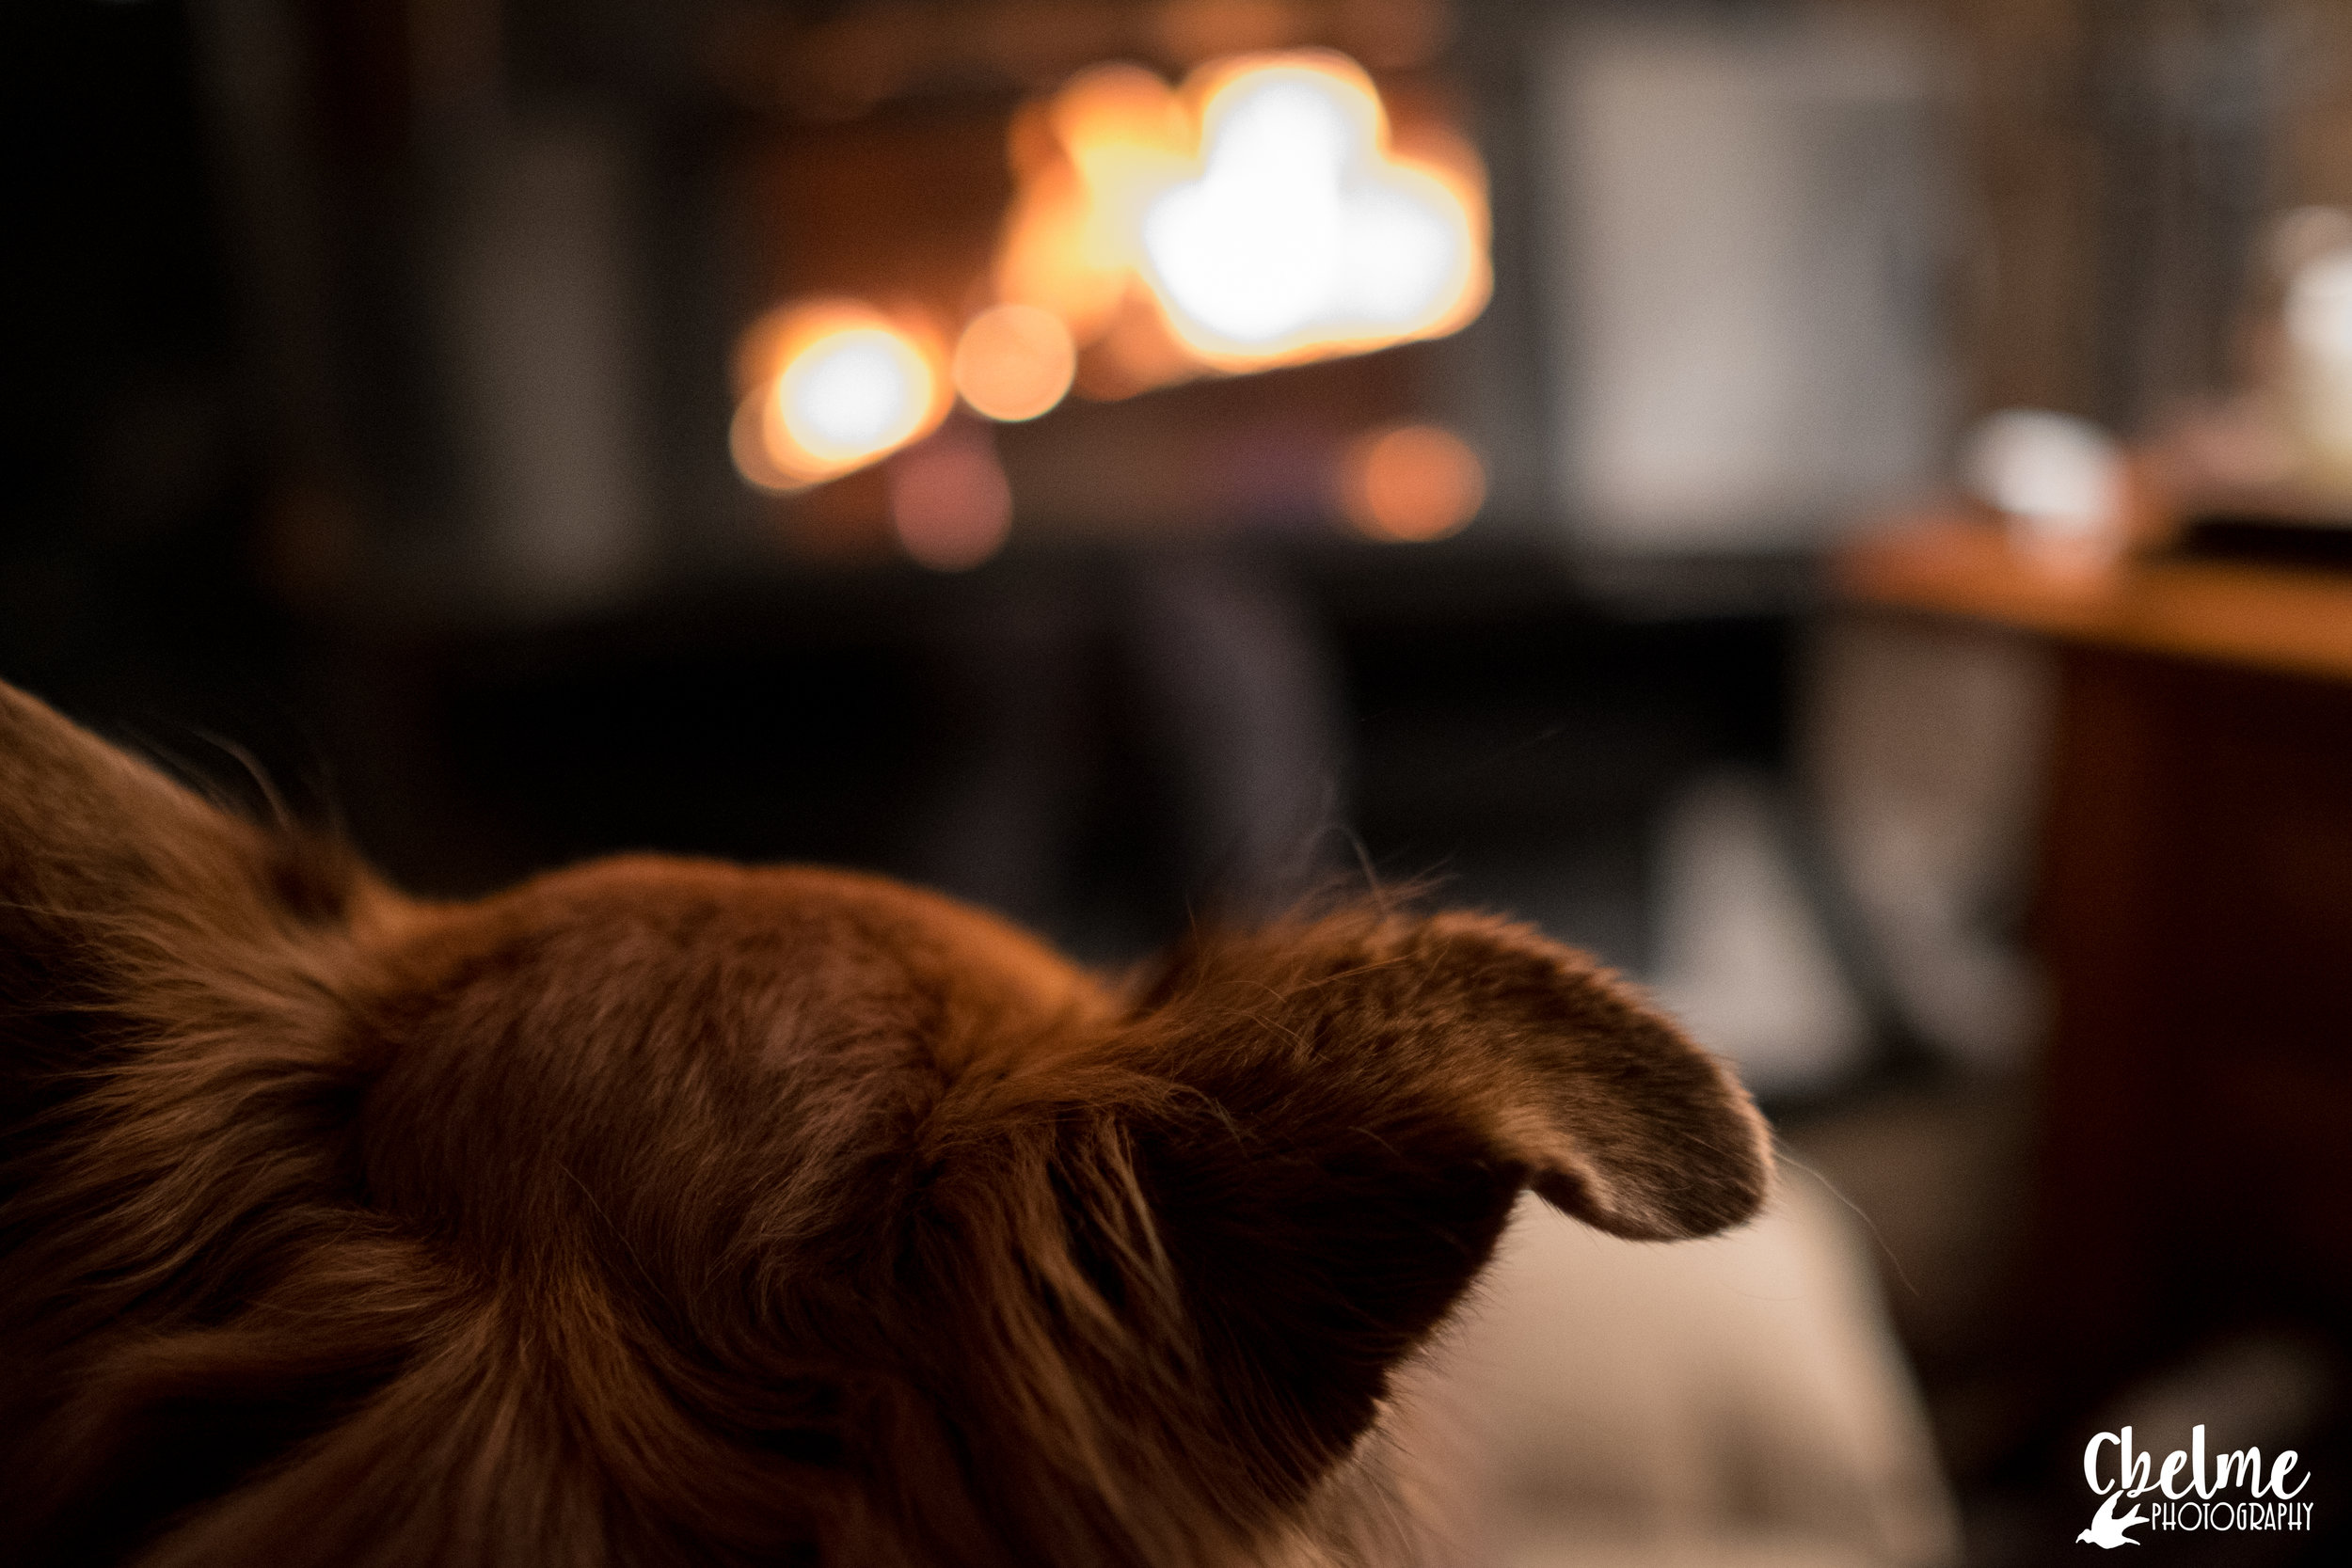 Russ Pup warming up by the fire - Tabernash, CO